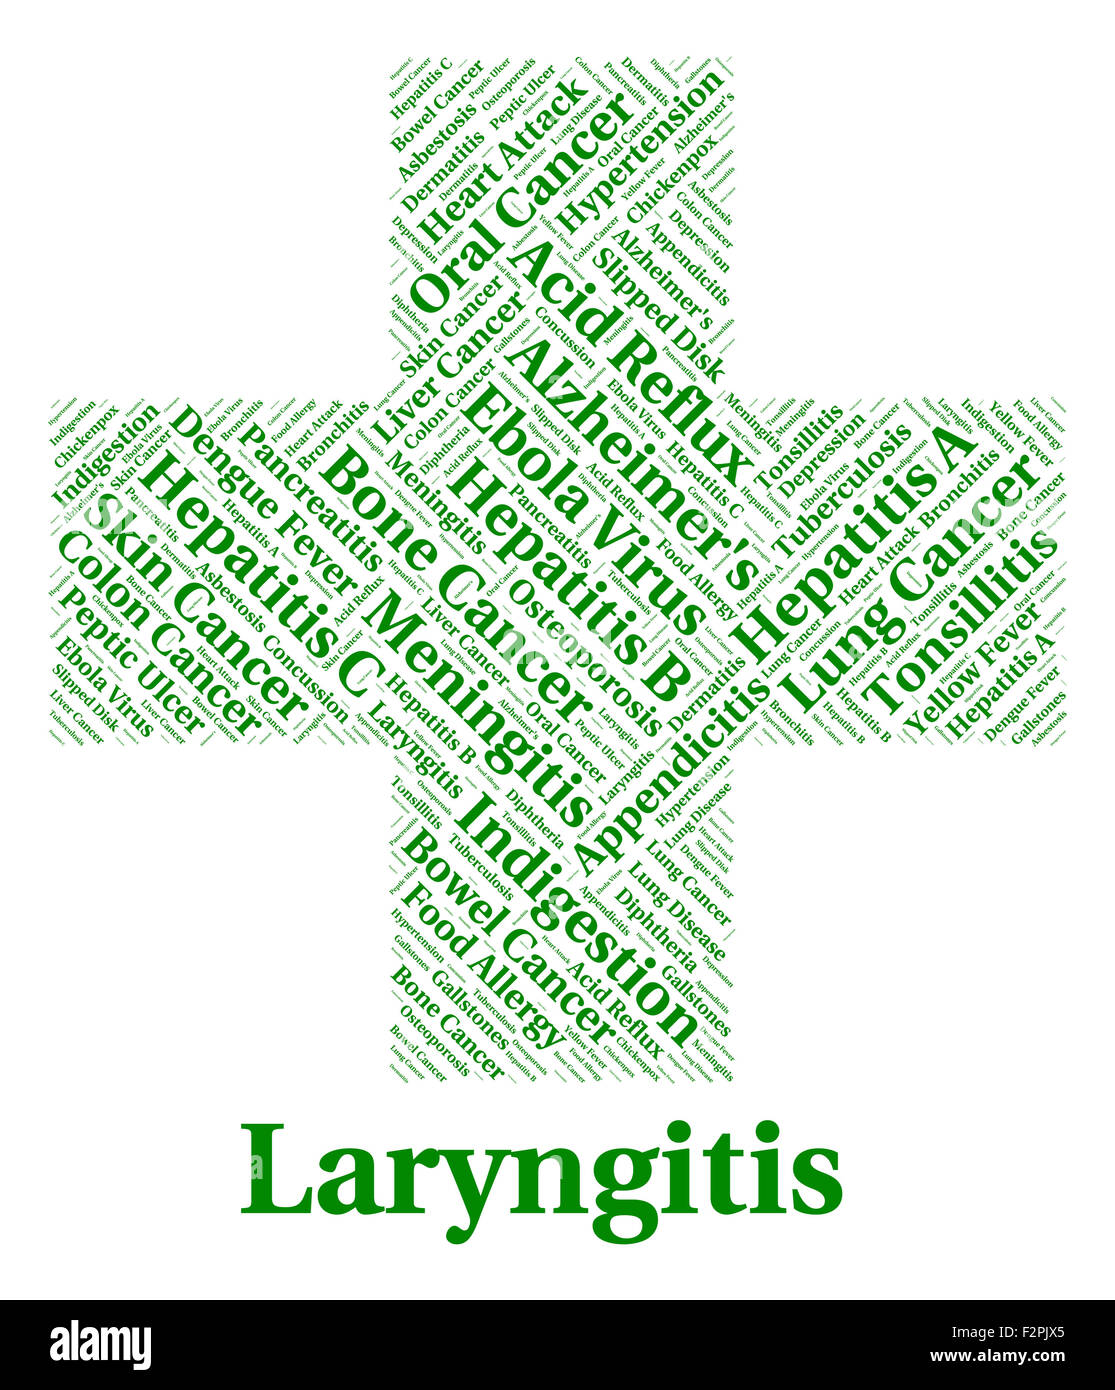 Laryngitis Illness Meaning Poor Health And Infection Stock Photo